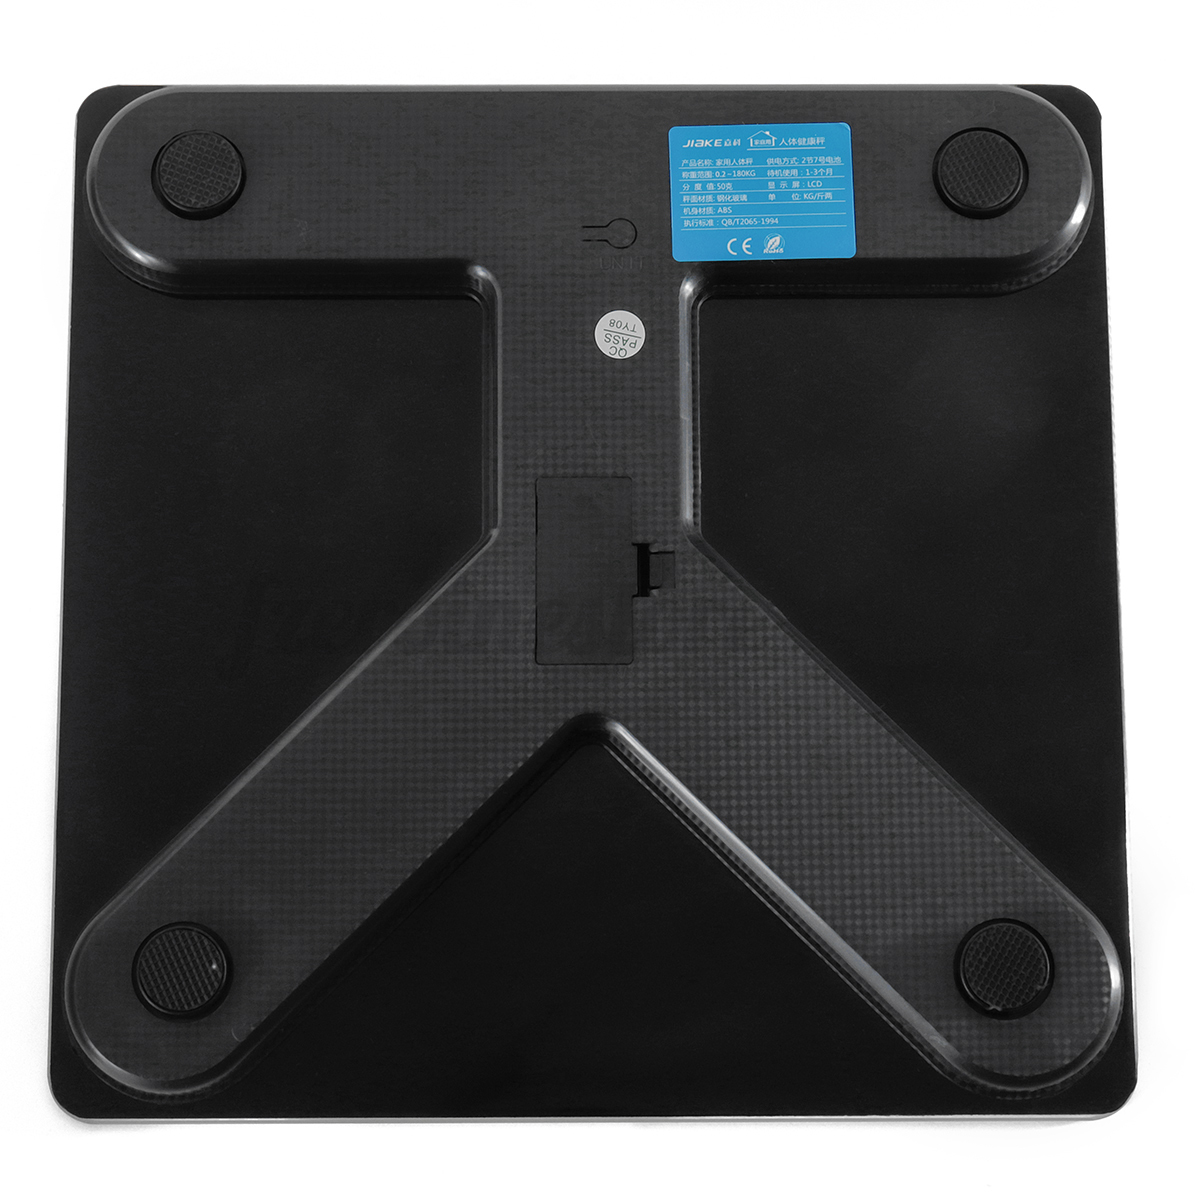 LED-bluetooth-Wireless-Digital-Bathroom-Weight-Scale-Body-Fat-Measures-Weight thumbnail 4